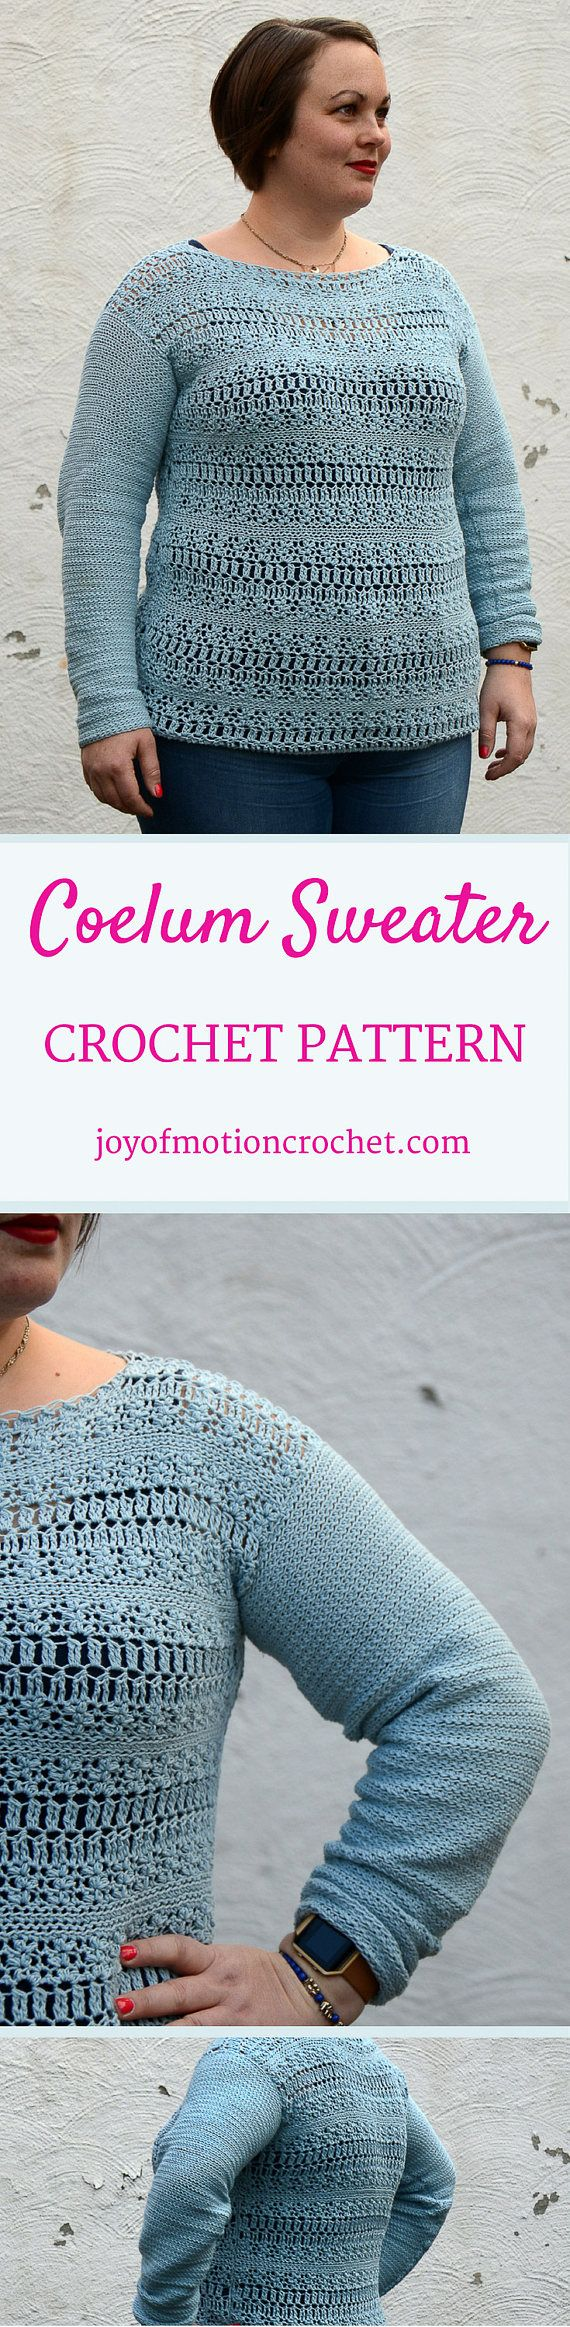 Coelum Sweater Crochet Pattern  ★ Crochet pattern for the Coelum Sweater, a woman's spring & summer sweater. ★ Perfect to throw over your top during those warmer months! ★ XS-XL. ★ Skill level: EASY ★ Language: English / US crochet terms.  The Coelum Sweater Crochet Pattern makes an easy, but detailed sweater. Consequently it can be made quickly & are perfect for spring & summer. You'll easily stitch it up in just a few days, because you don't need to do difficult increase or...